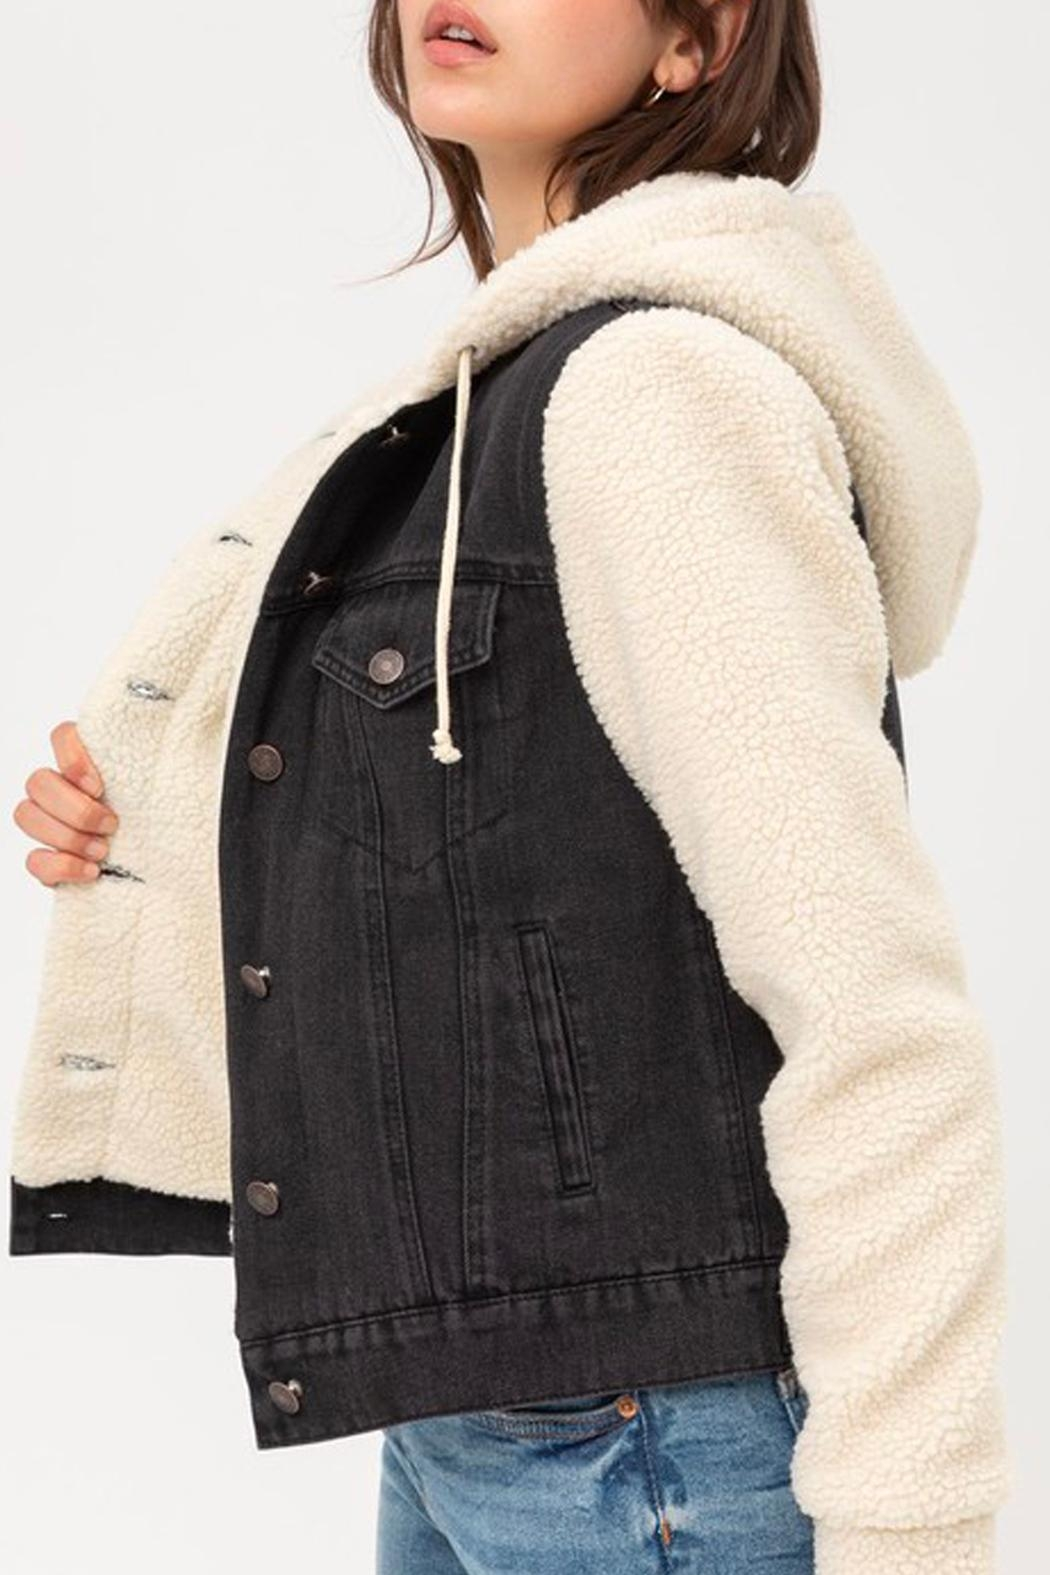 Wild Lilies Jewelry  Denim Sherpa Jacket - Side Cropped Image